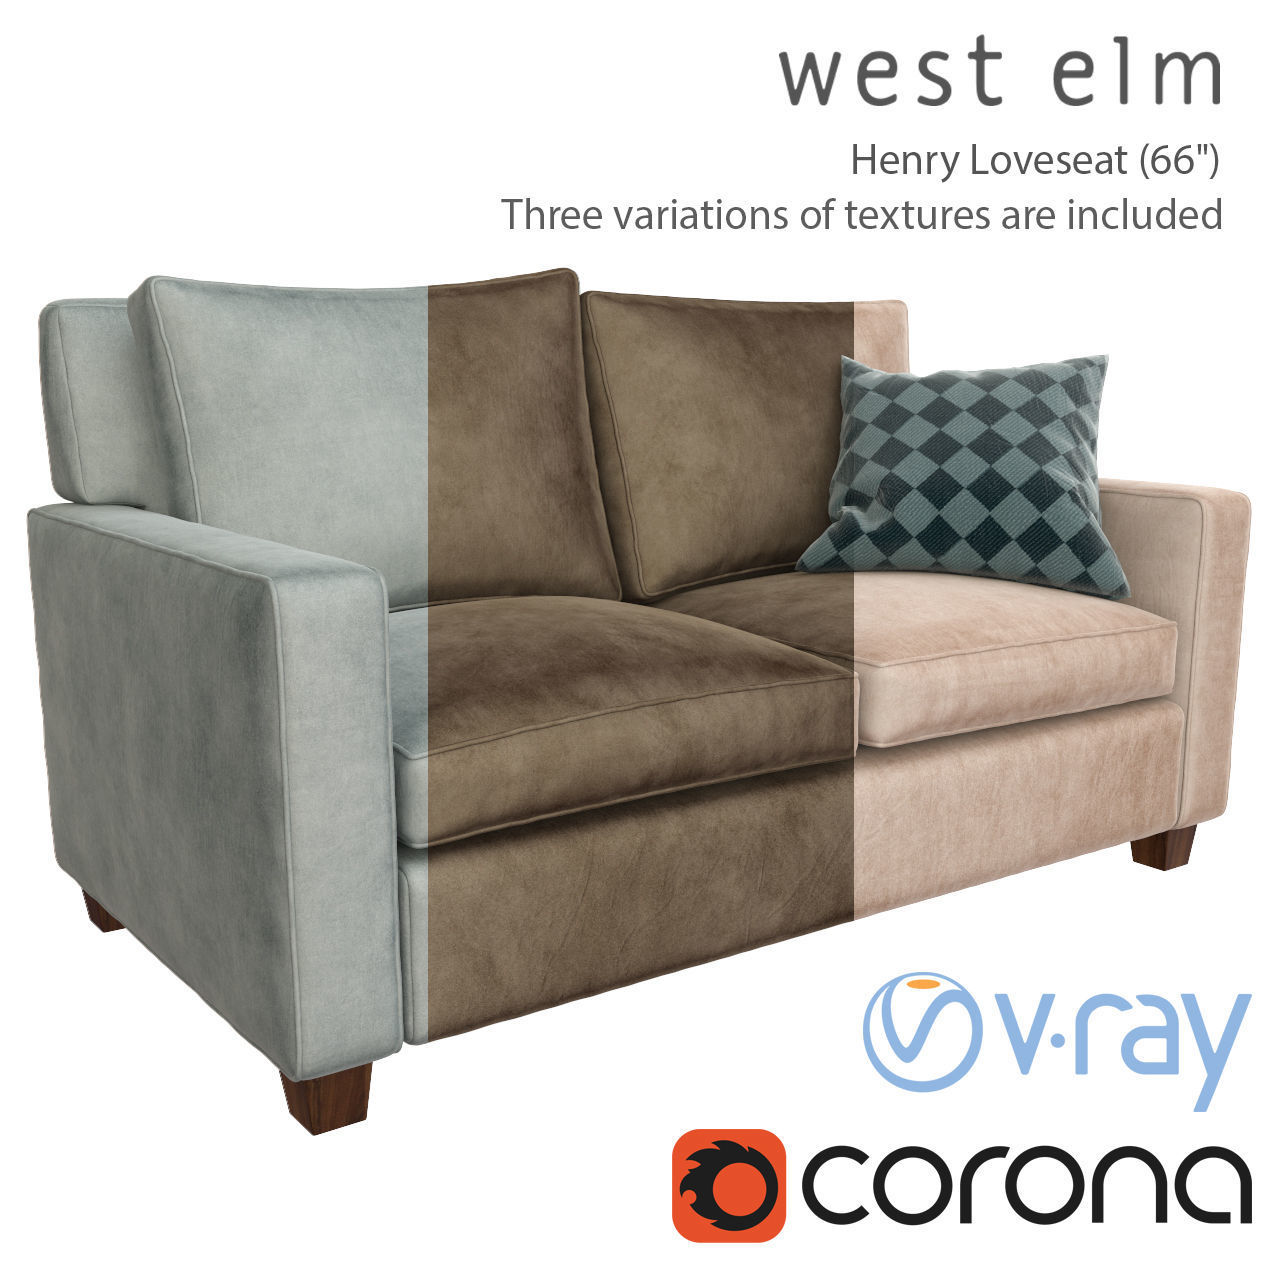 Wondrous Sofa Henry Loveseat West Elm 3D Model Caraccident5 Cool Chair Designs And Ideas Caraccident5Info